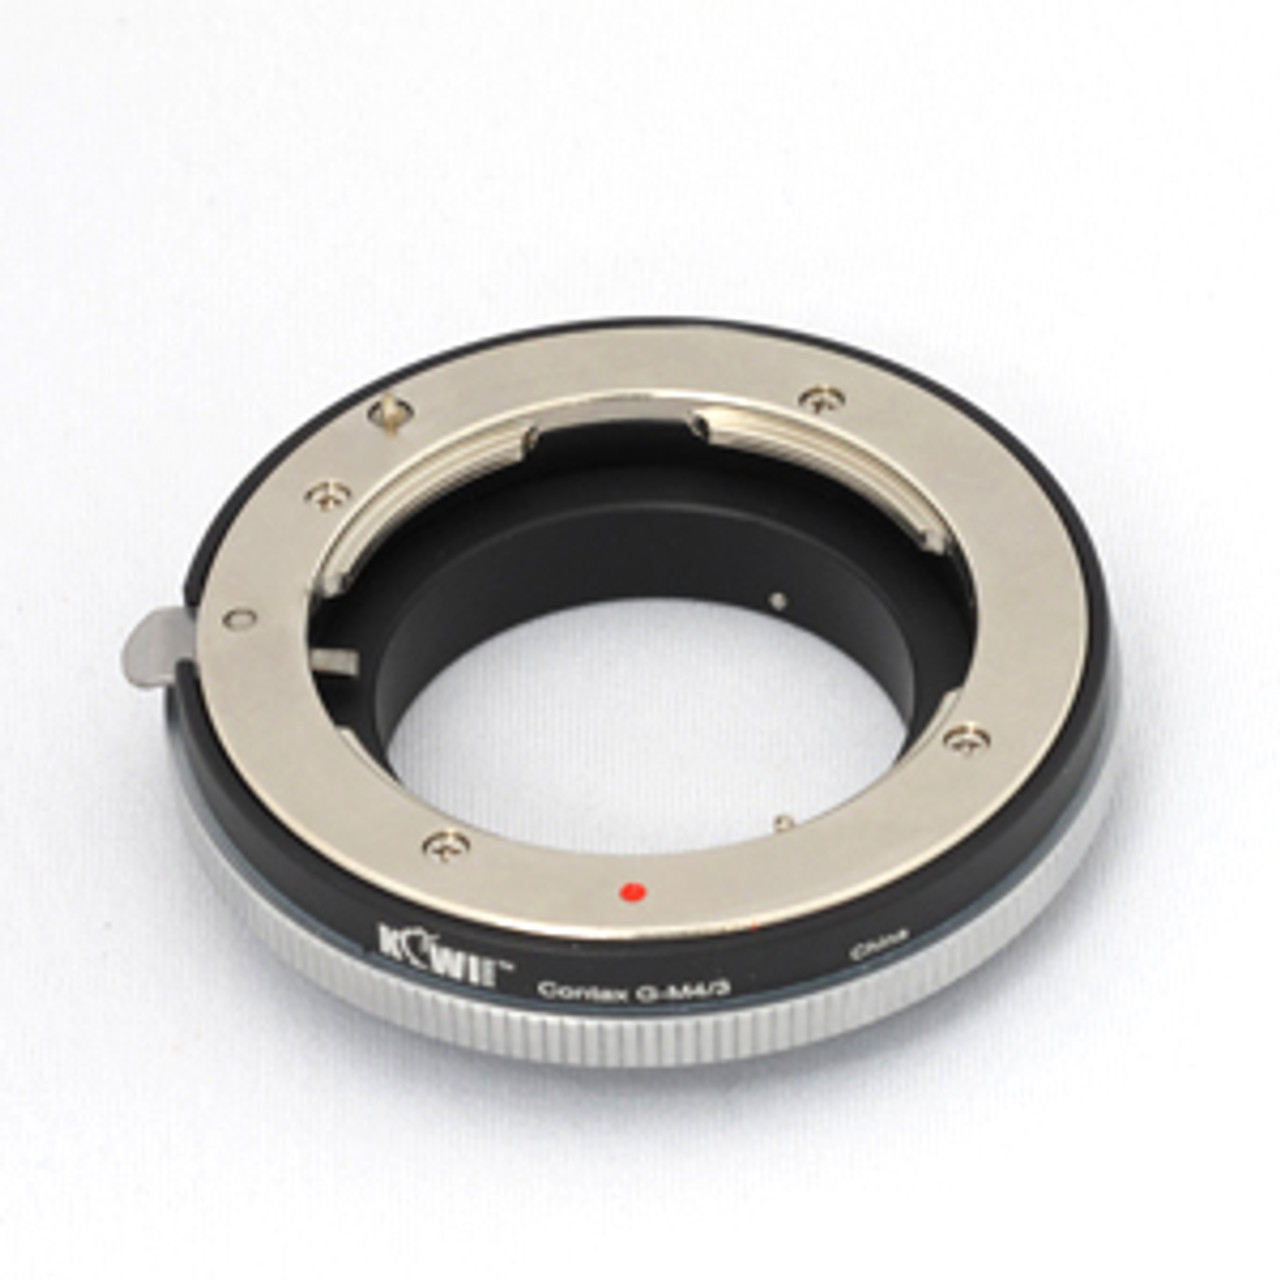 Kiwi Contax G Lens to Micro 4/3 Lens Adapter